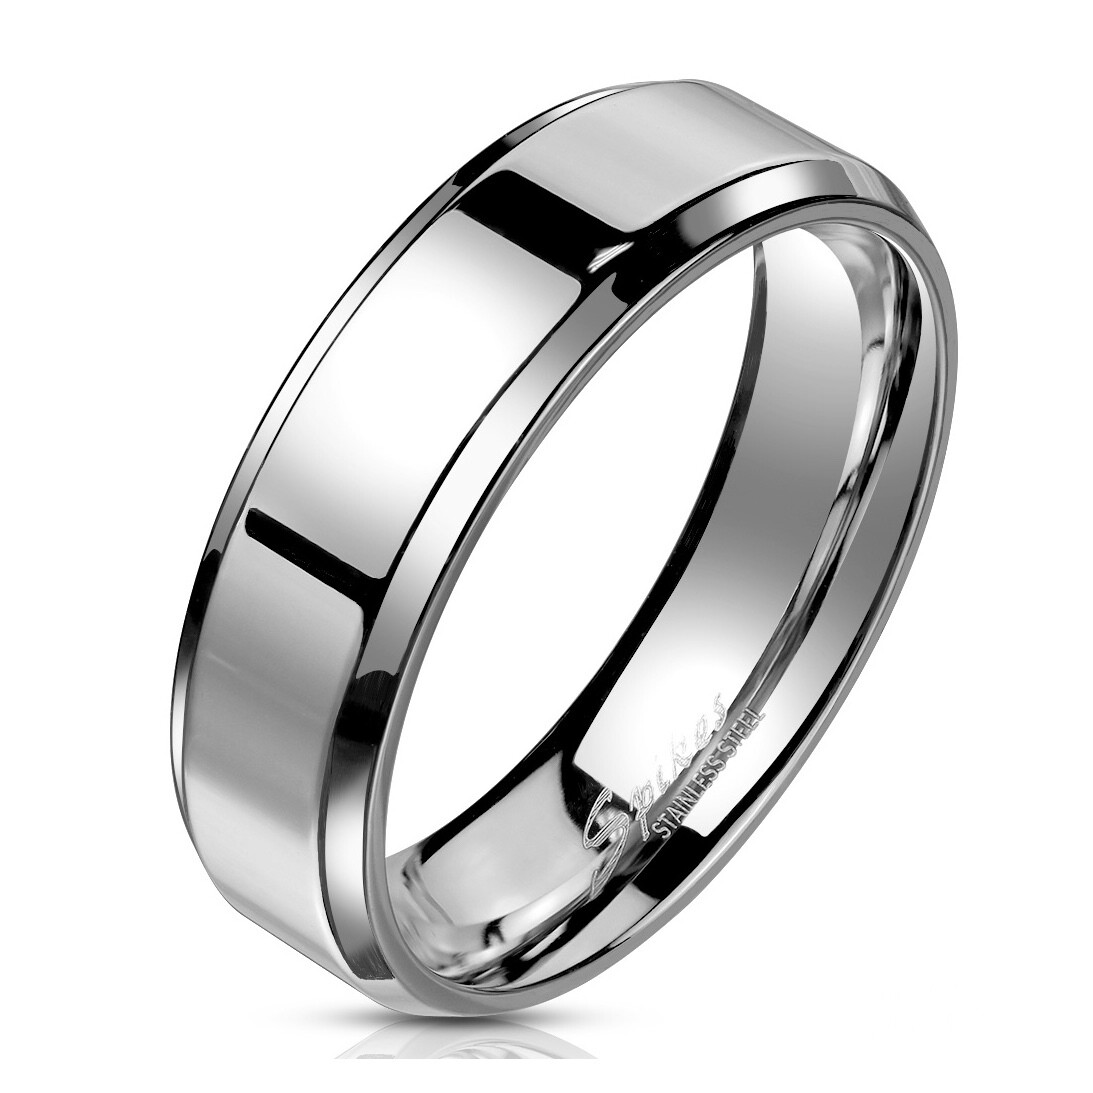 316L SILVER BEVELED RING